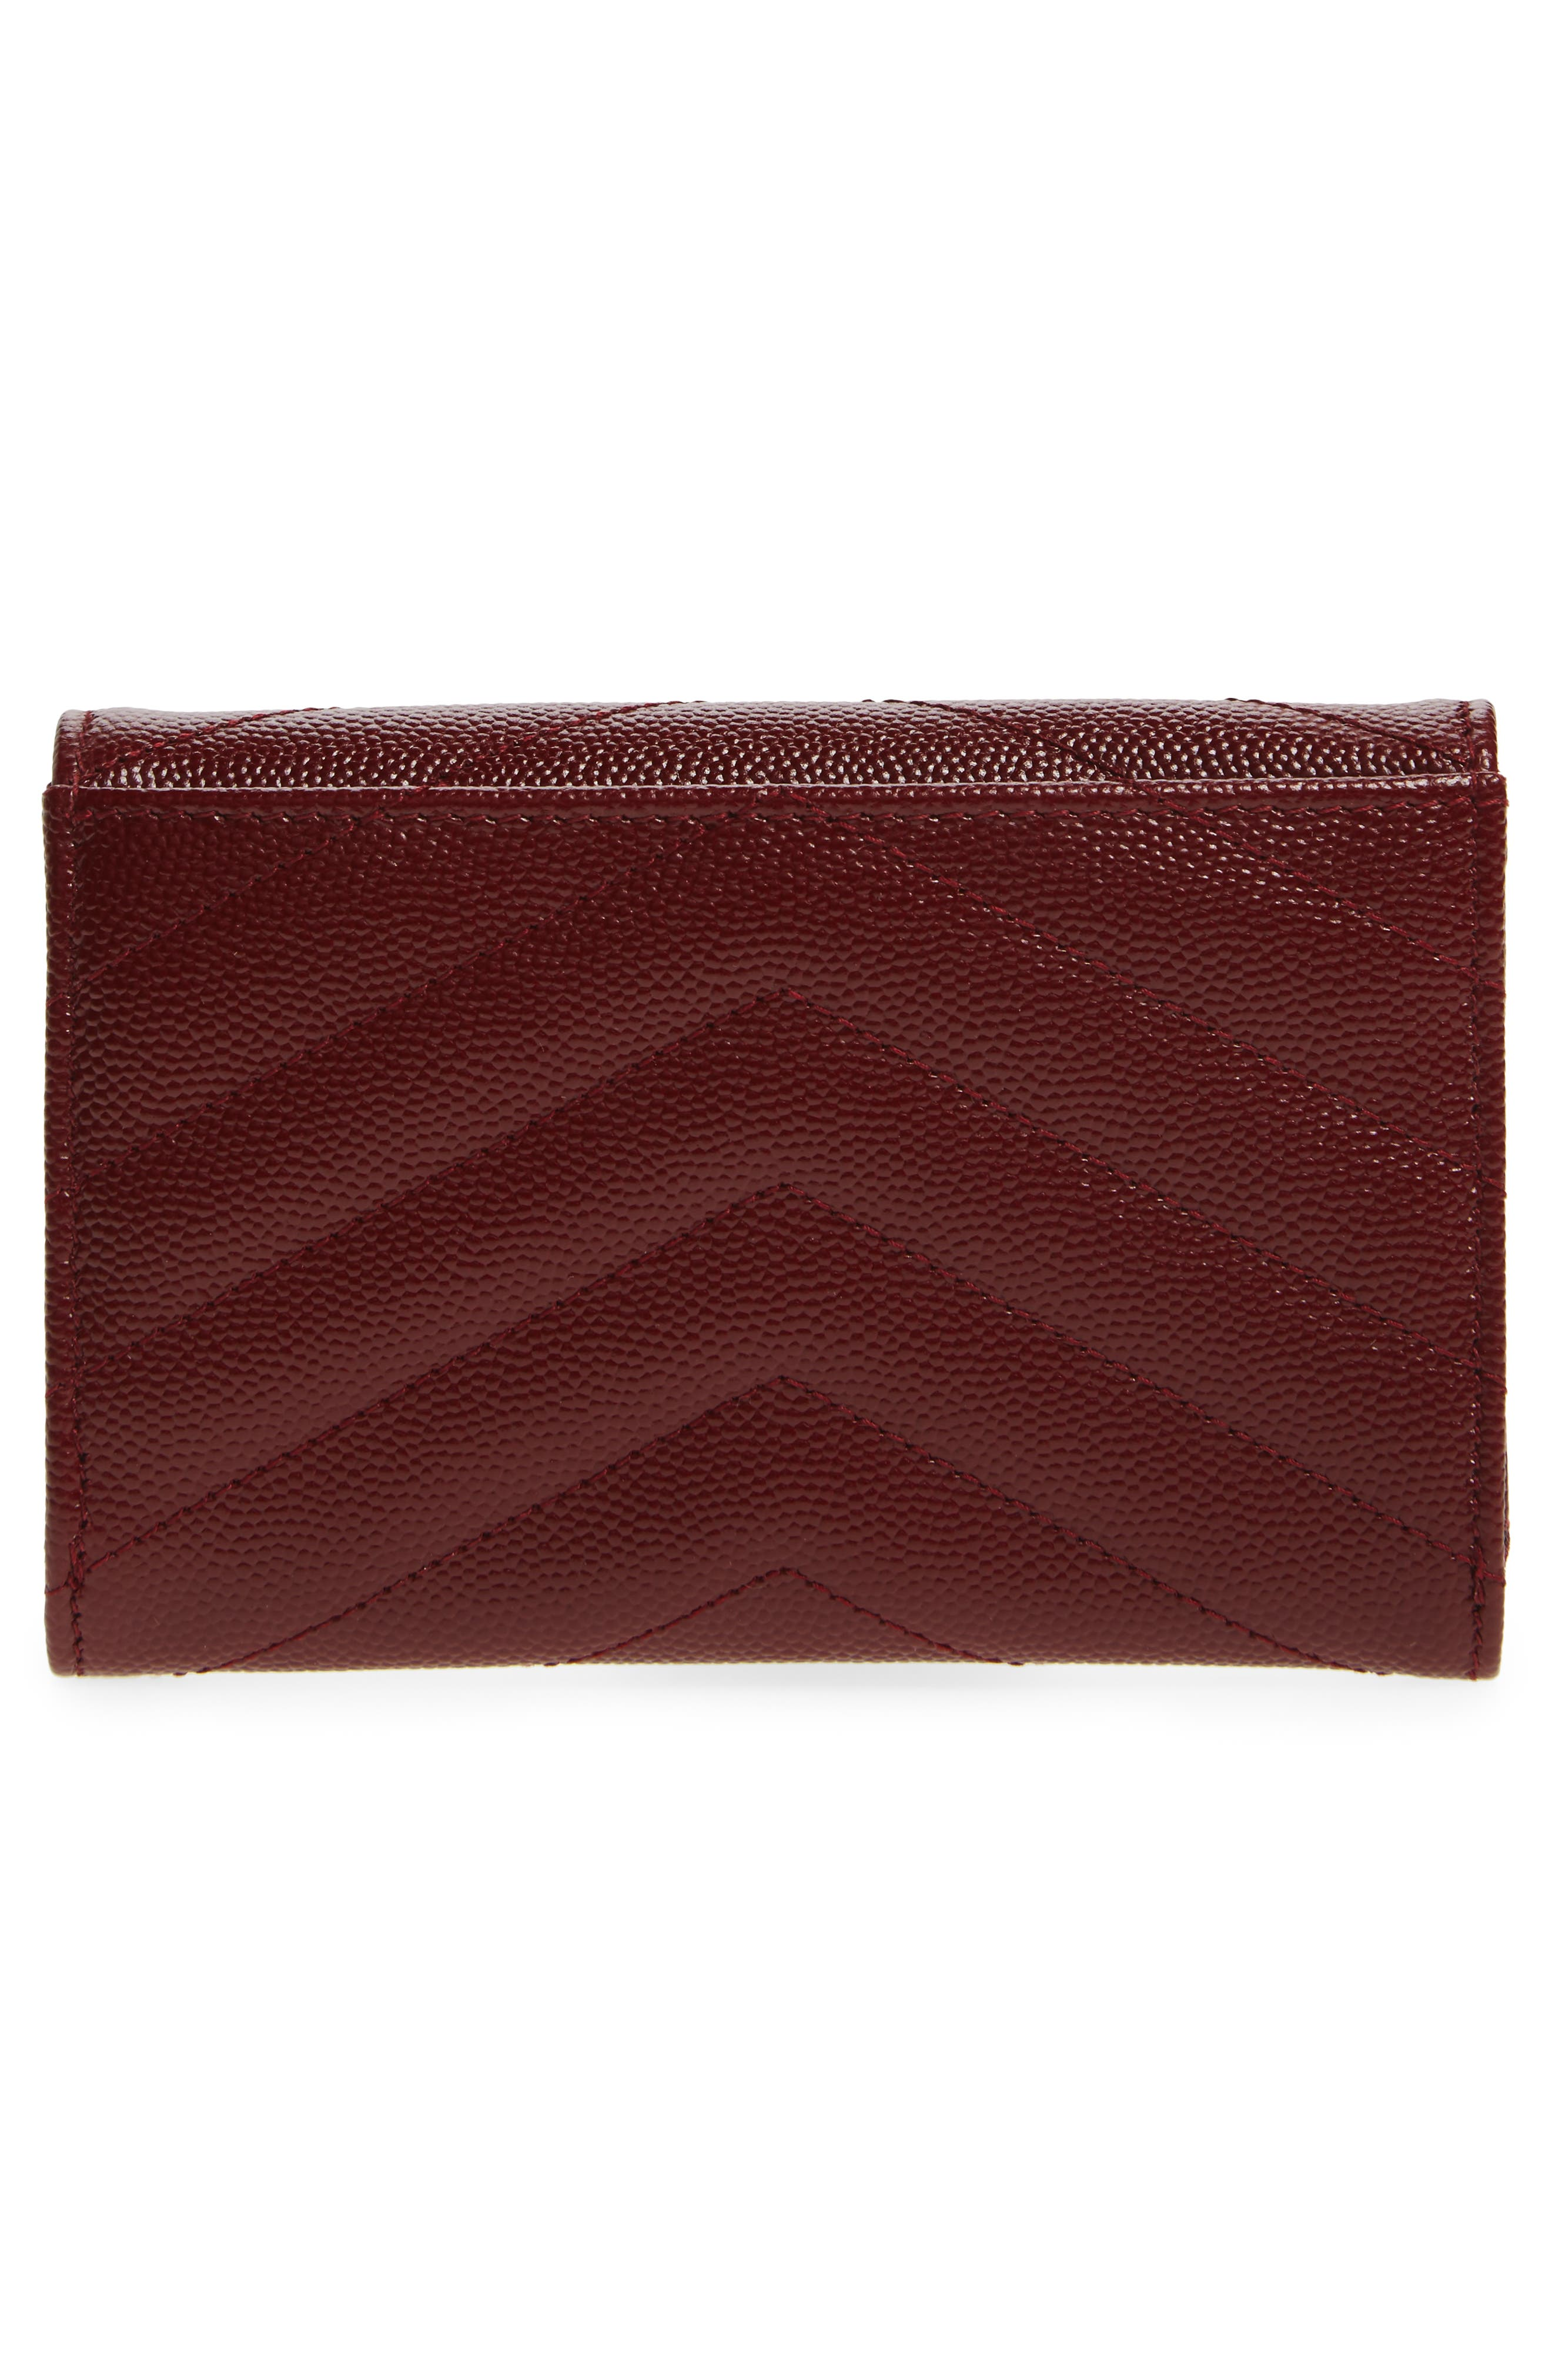 'Small Monogram' Leather French Wallet,                             Alternate thumbnail 26, color,